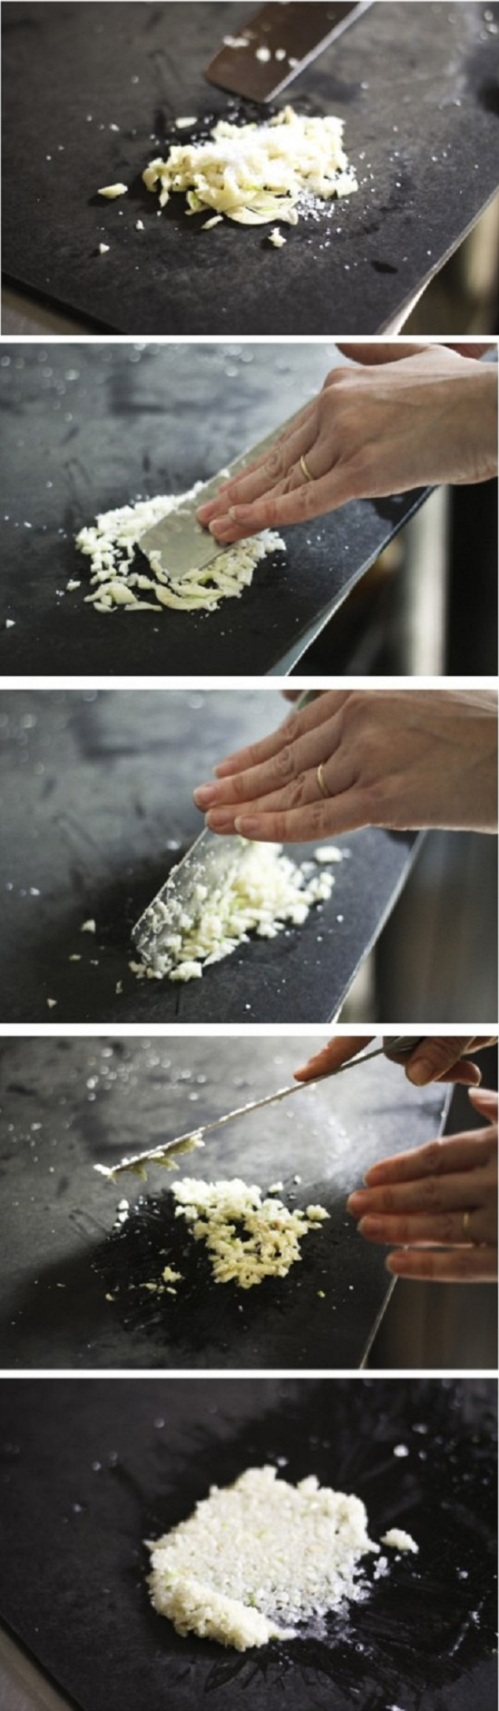 how to smashing-garlic-for-cooking recipe by cupcakepedia, garlic, smashing garlic, paste of garlic, garlic bread